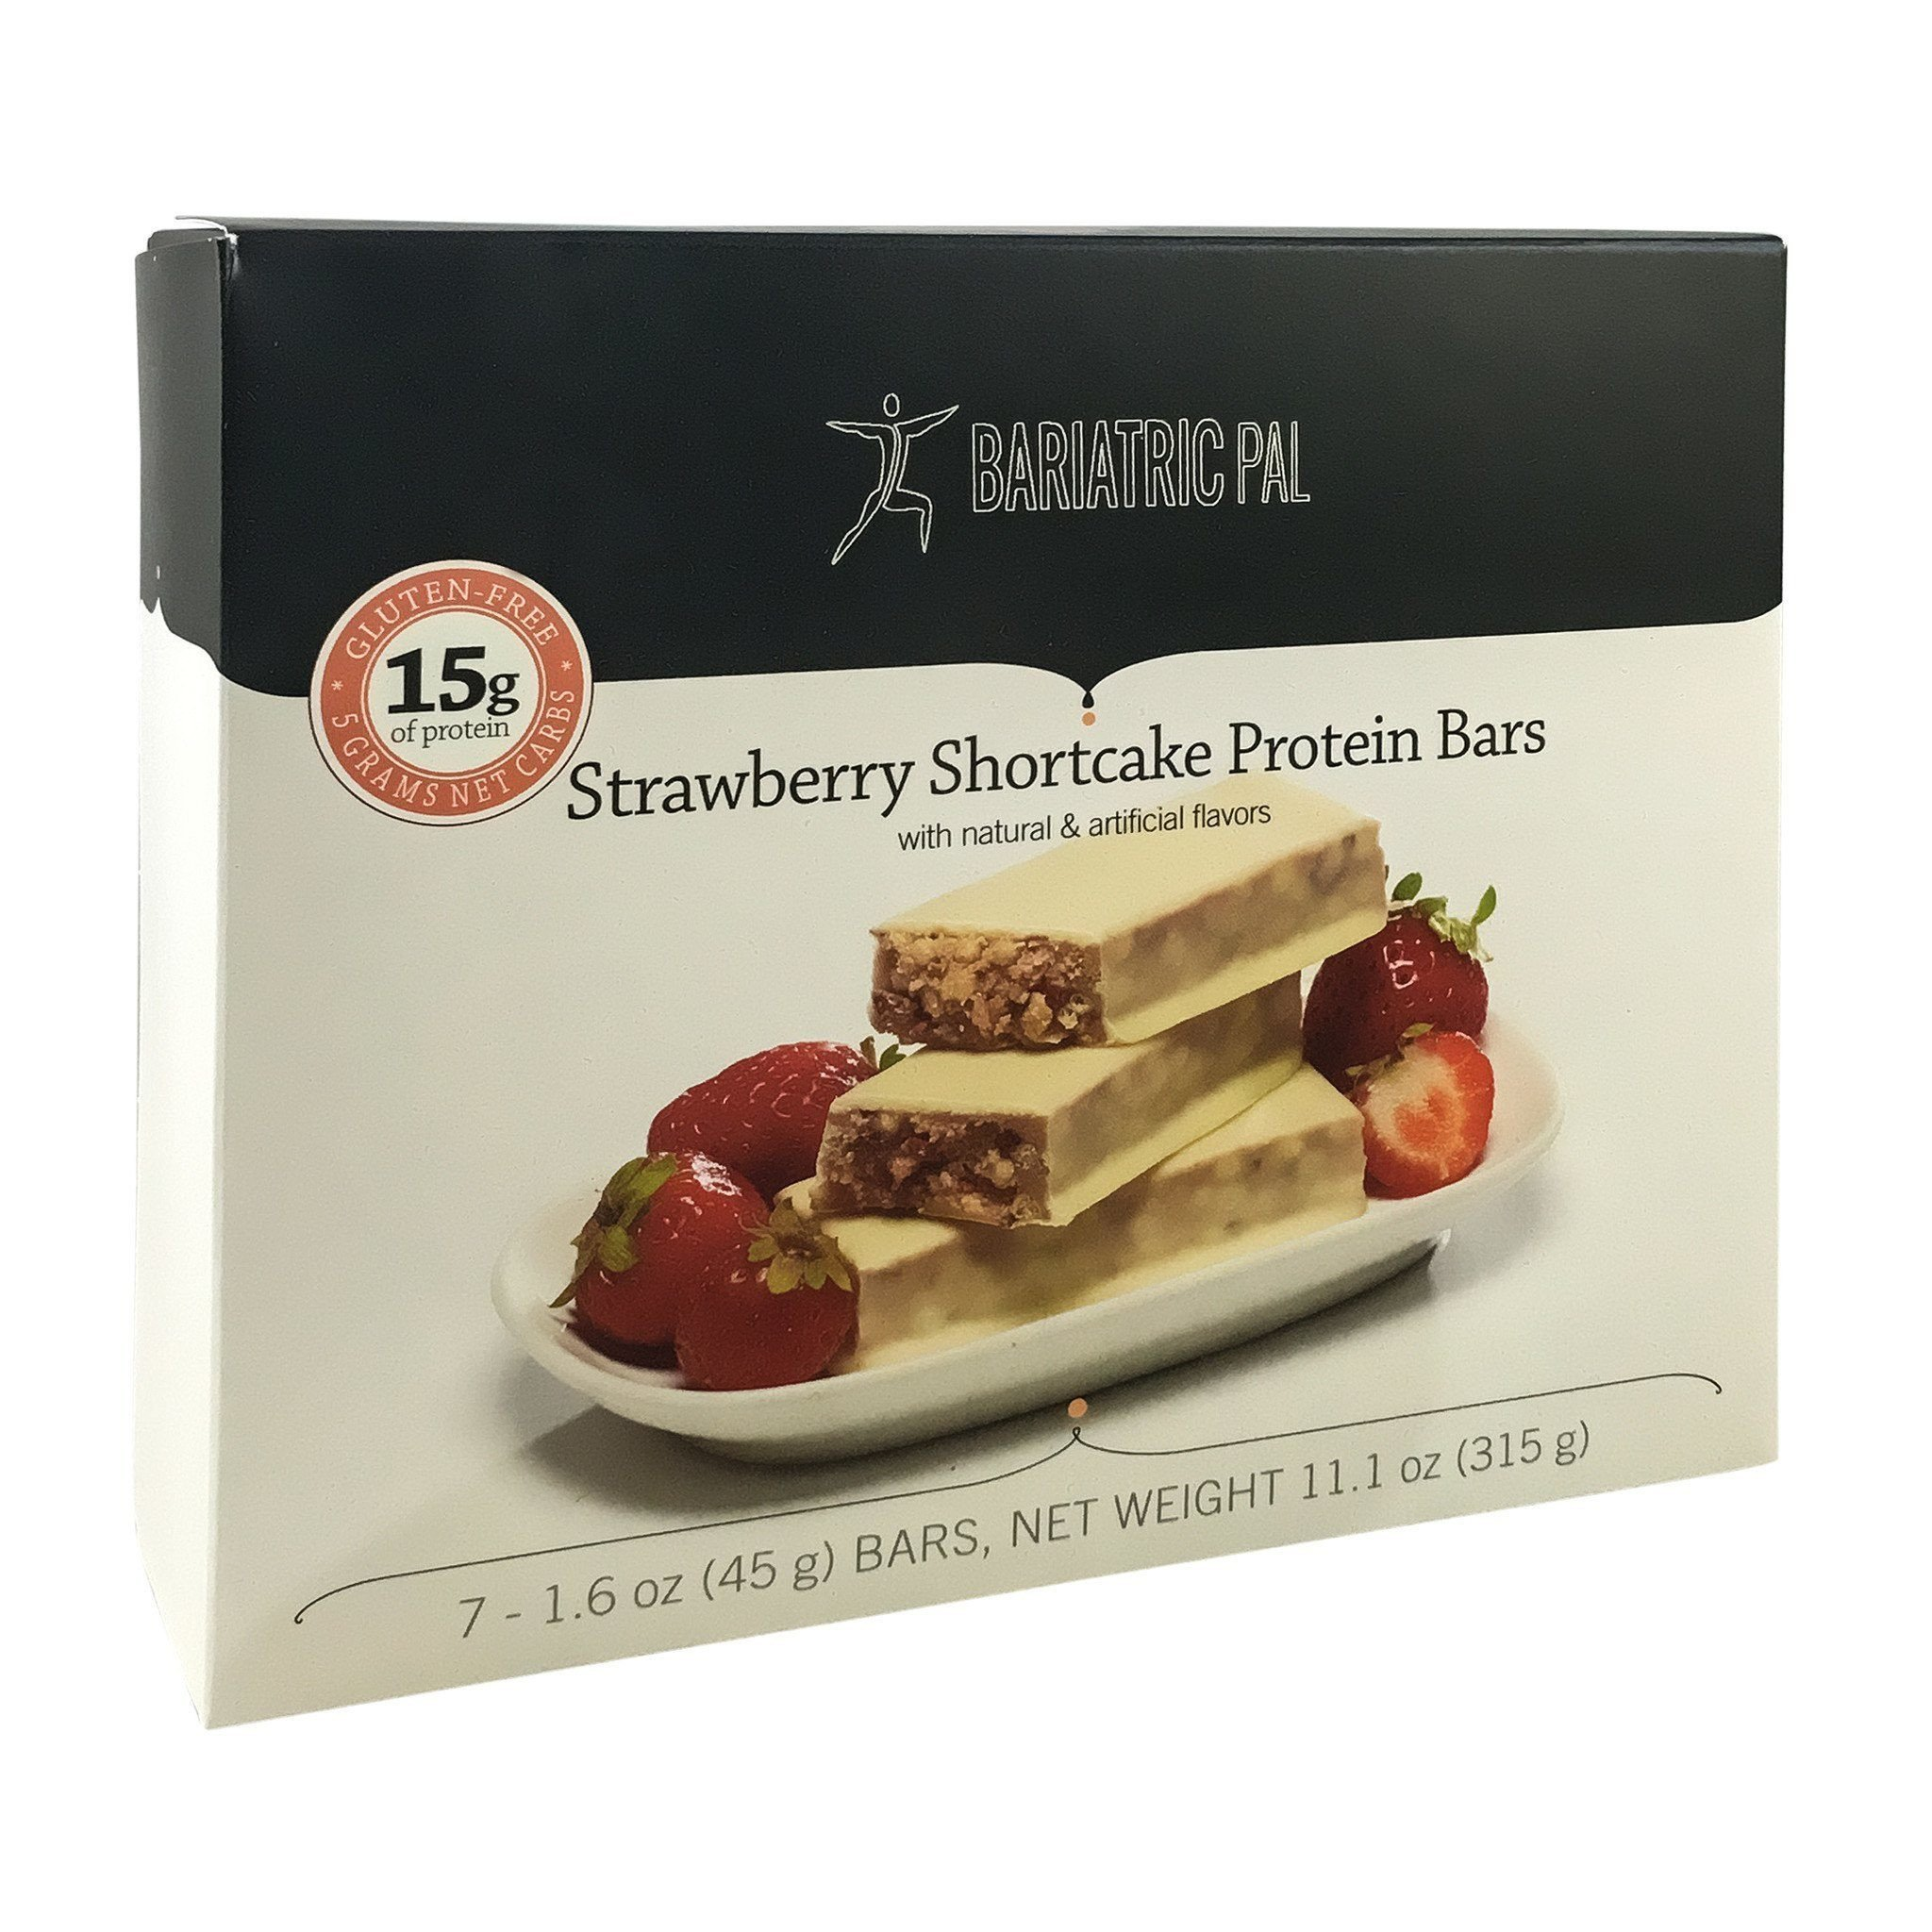 BariatricPal Low Carb Protein Bars - Strawberry Shortcake